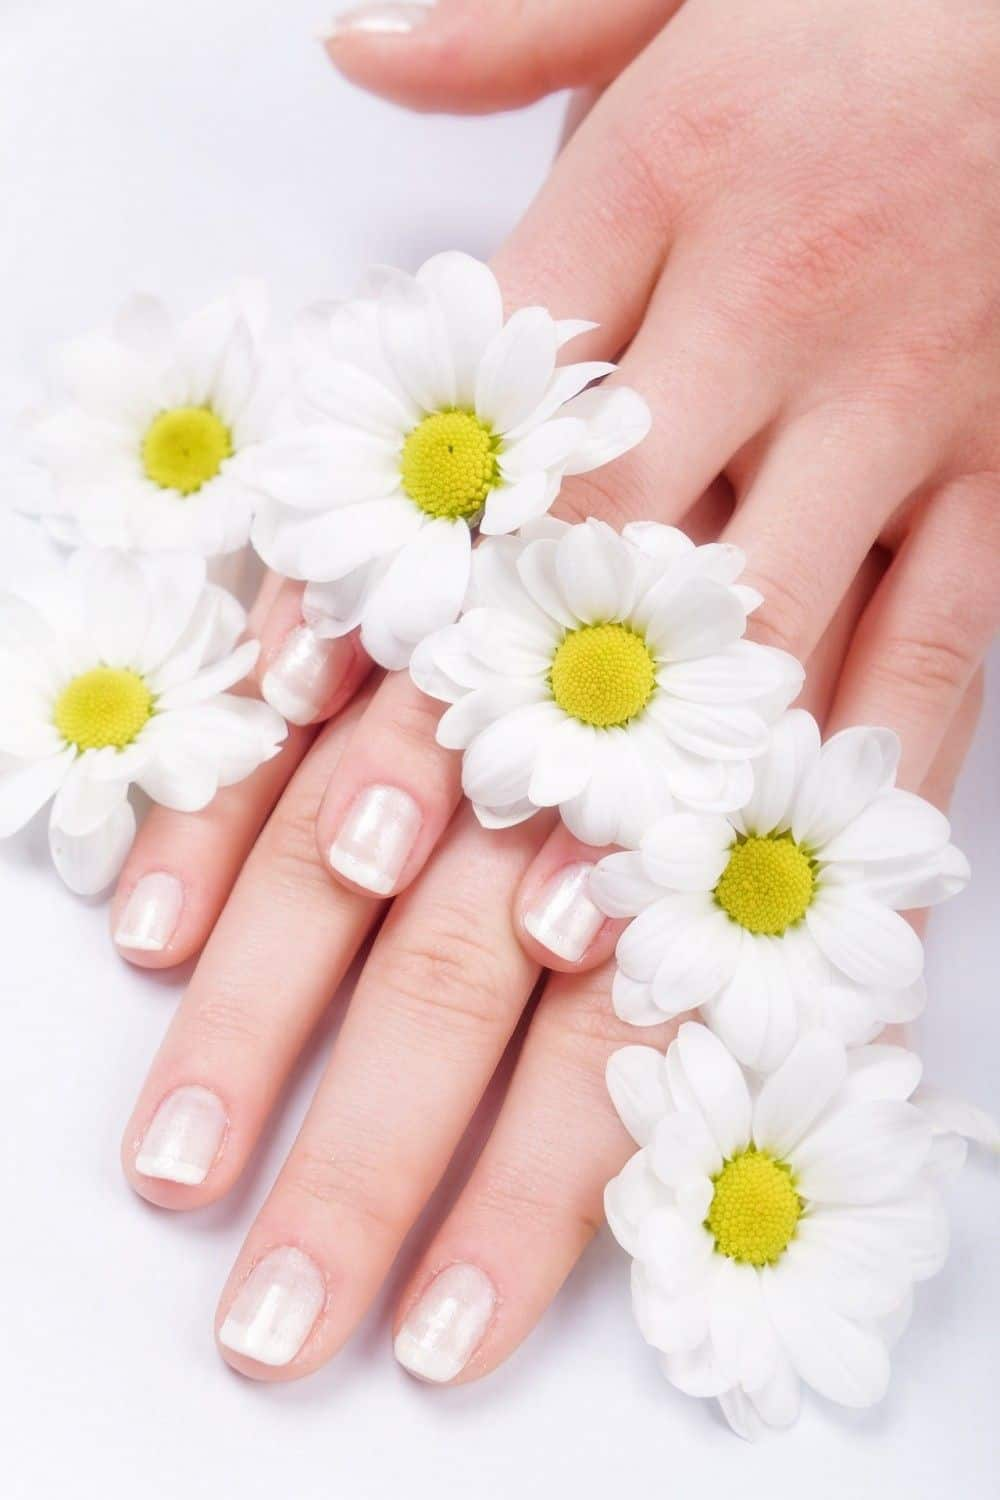 Liver Health May Be Reflected in the Fingernails - LiverSupport.com